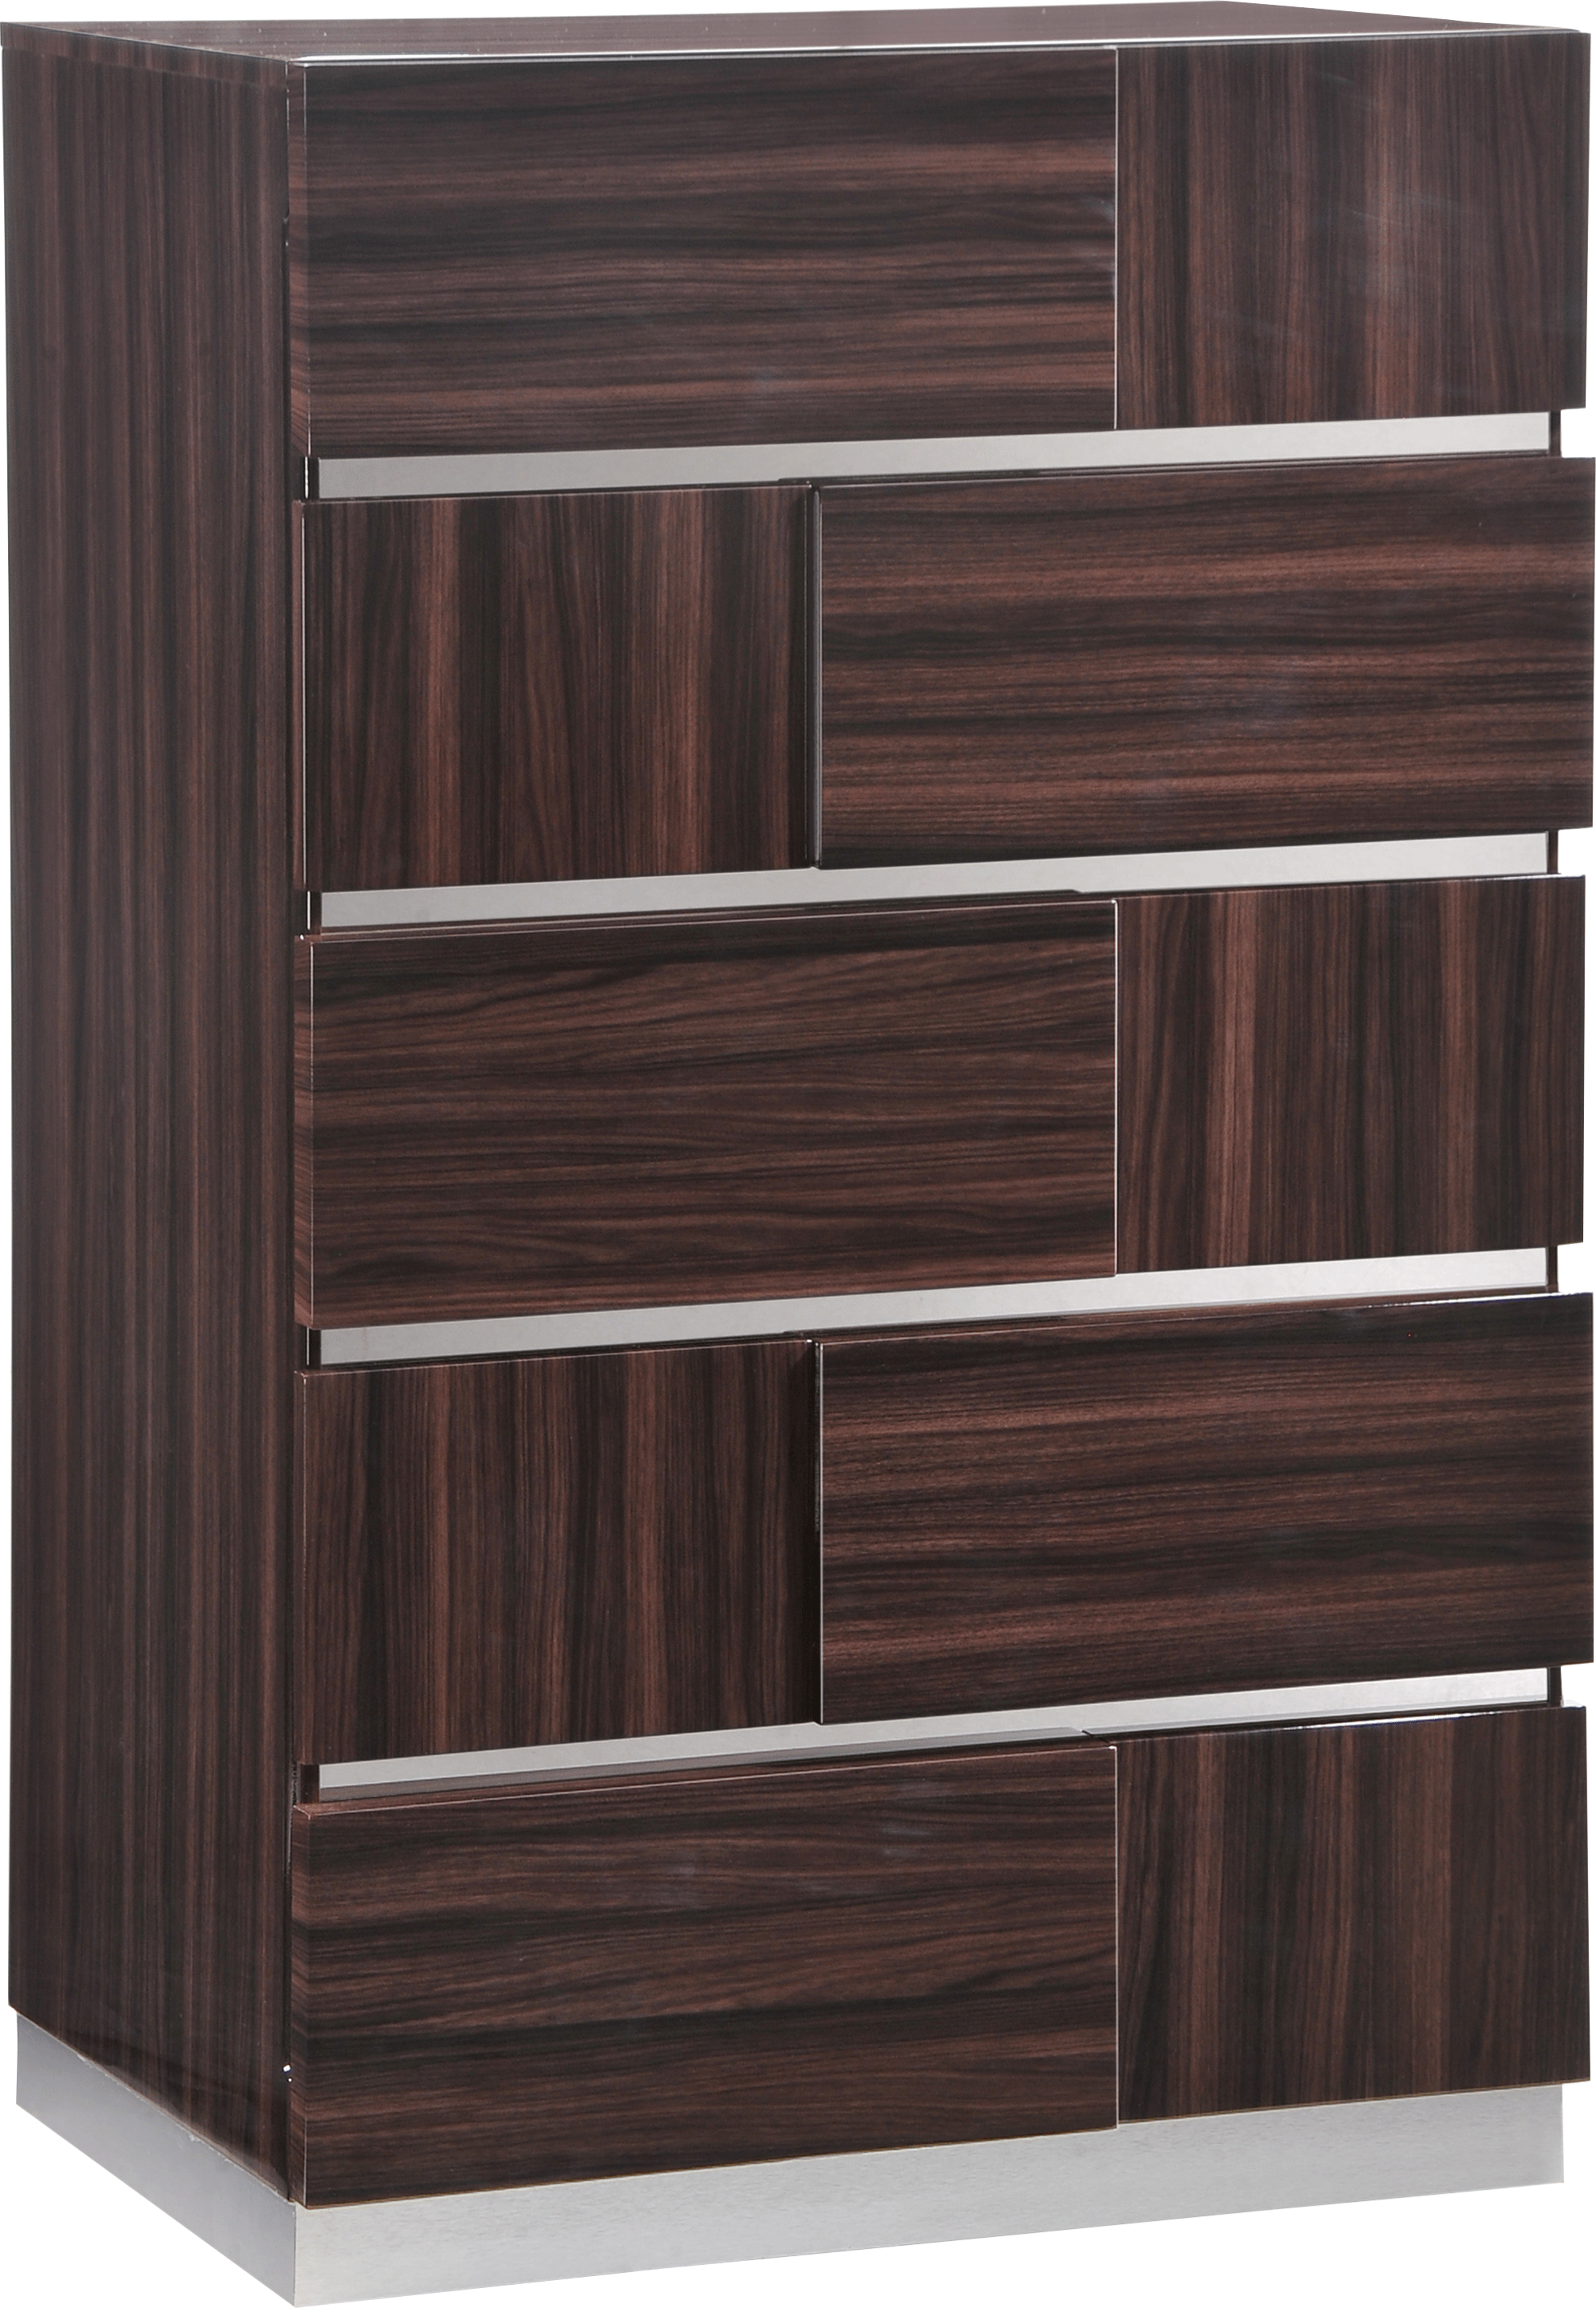 Tribeca Wood Grain Glossy Bedroom Set by Global Furniture